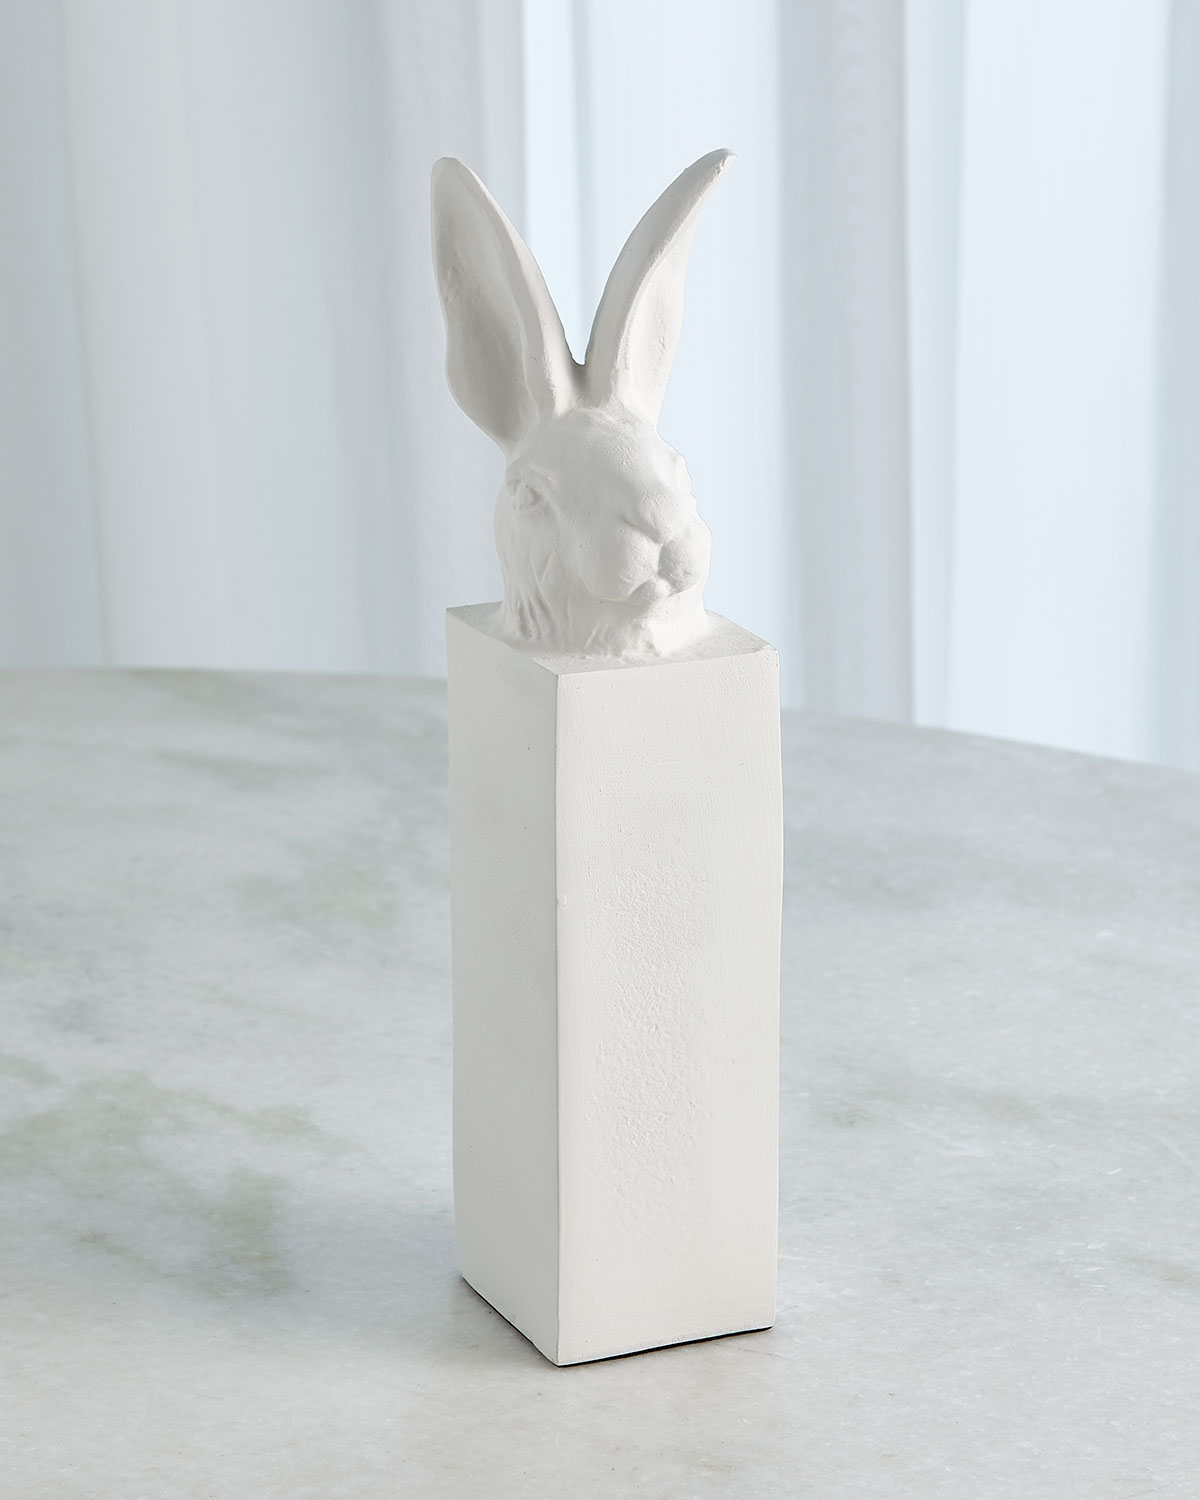 William D Scott Rabbit Head Sculpture